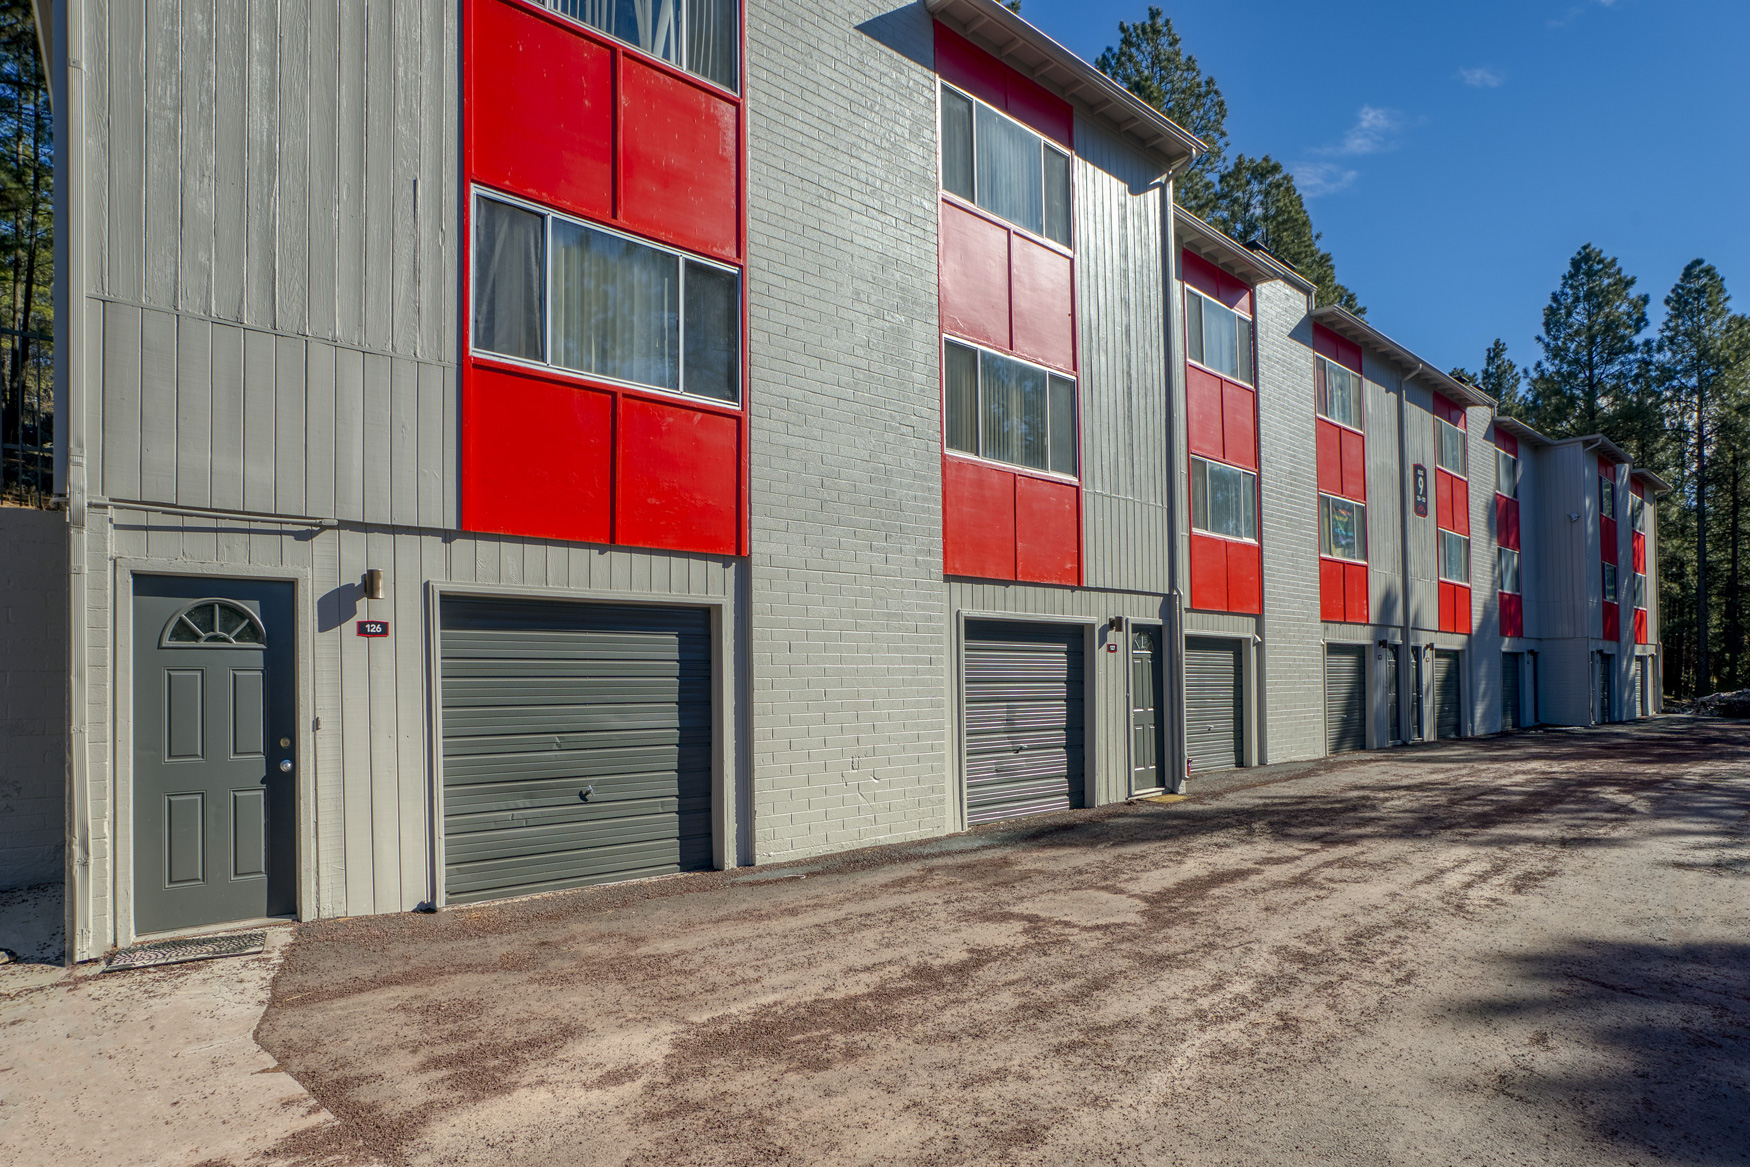 Attached Garages at Blk. Mtn. Lofts Apartments in Flagstaff, Arizona